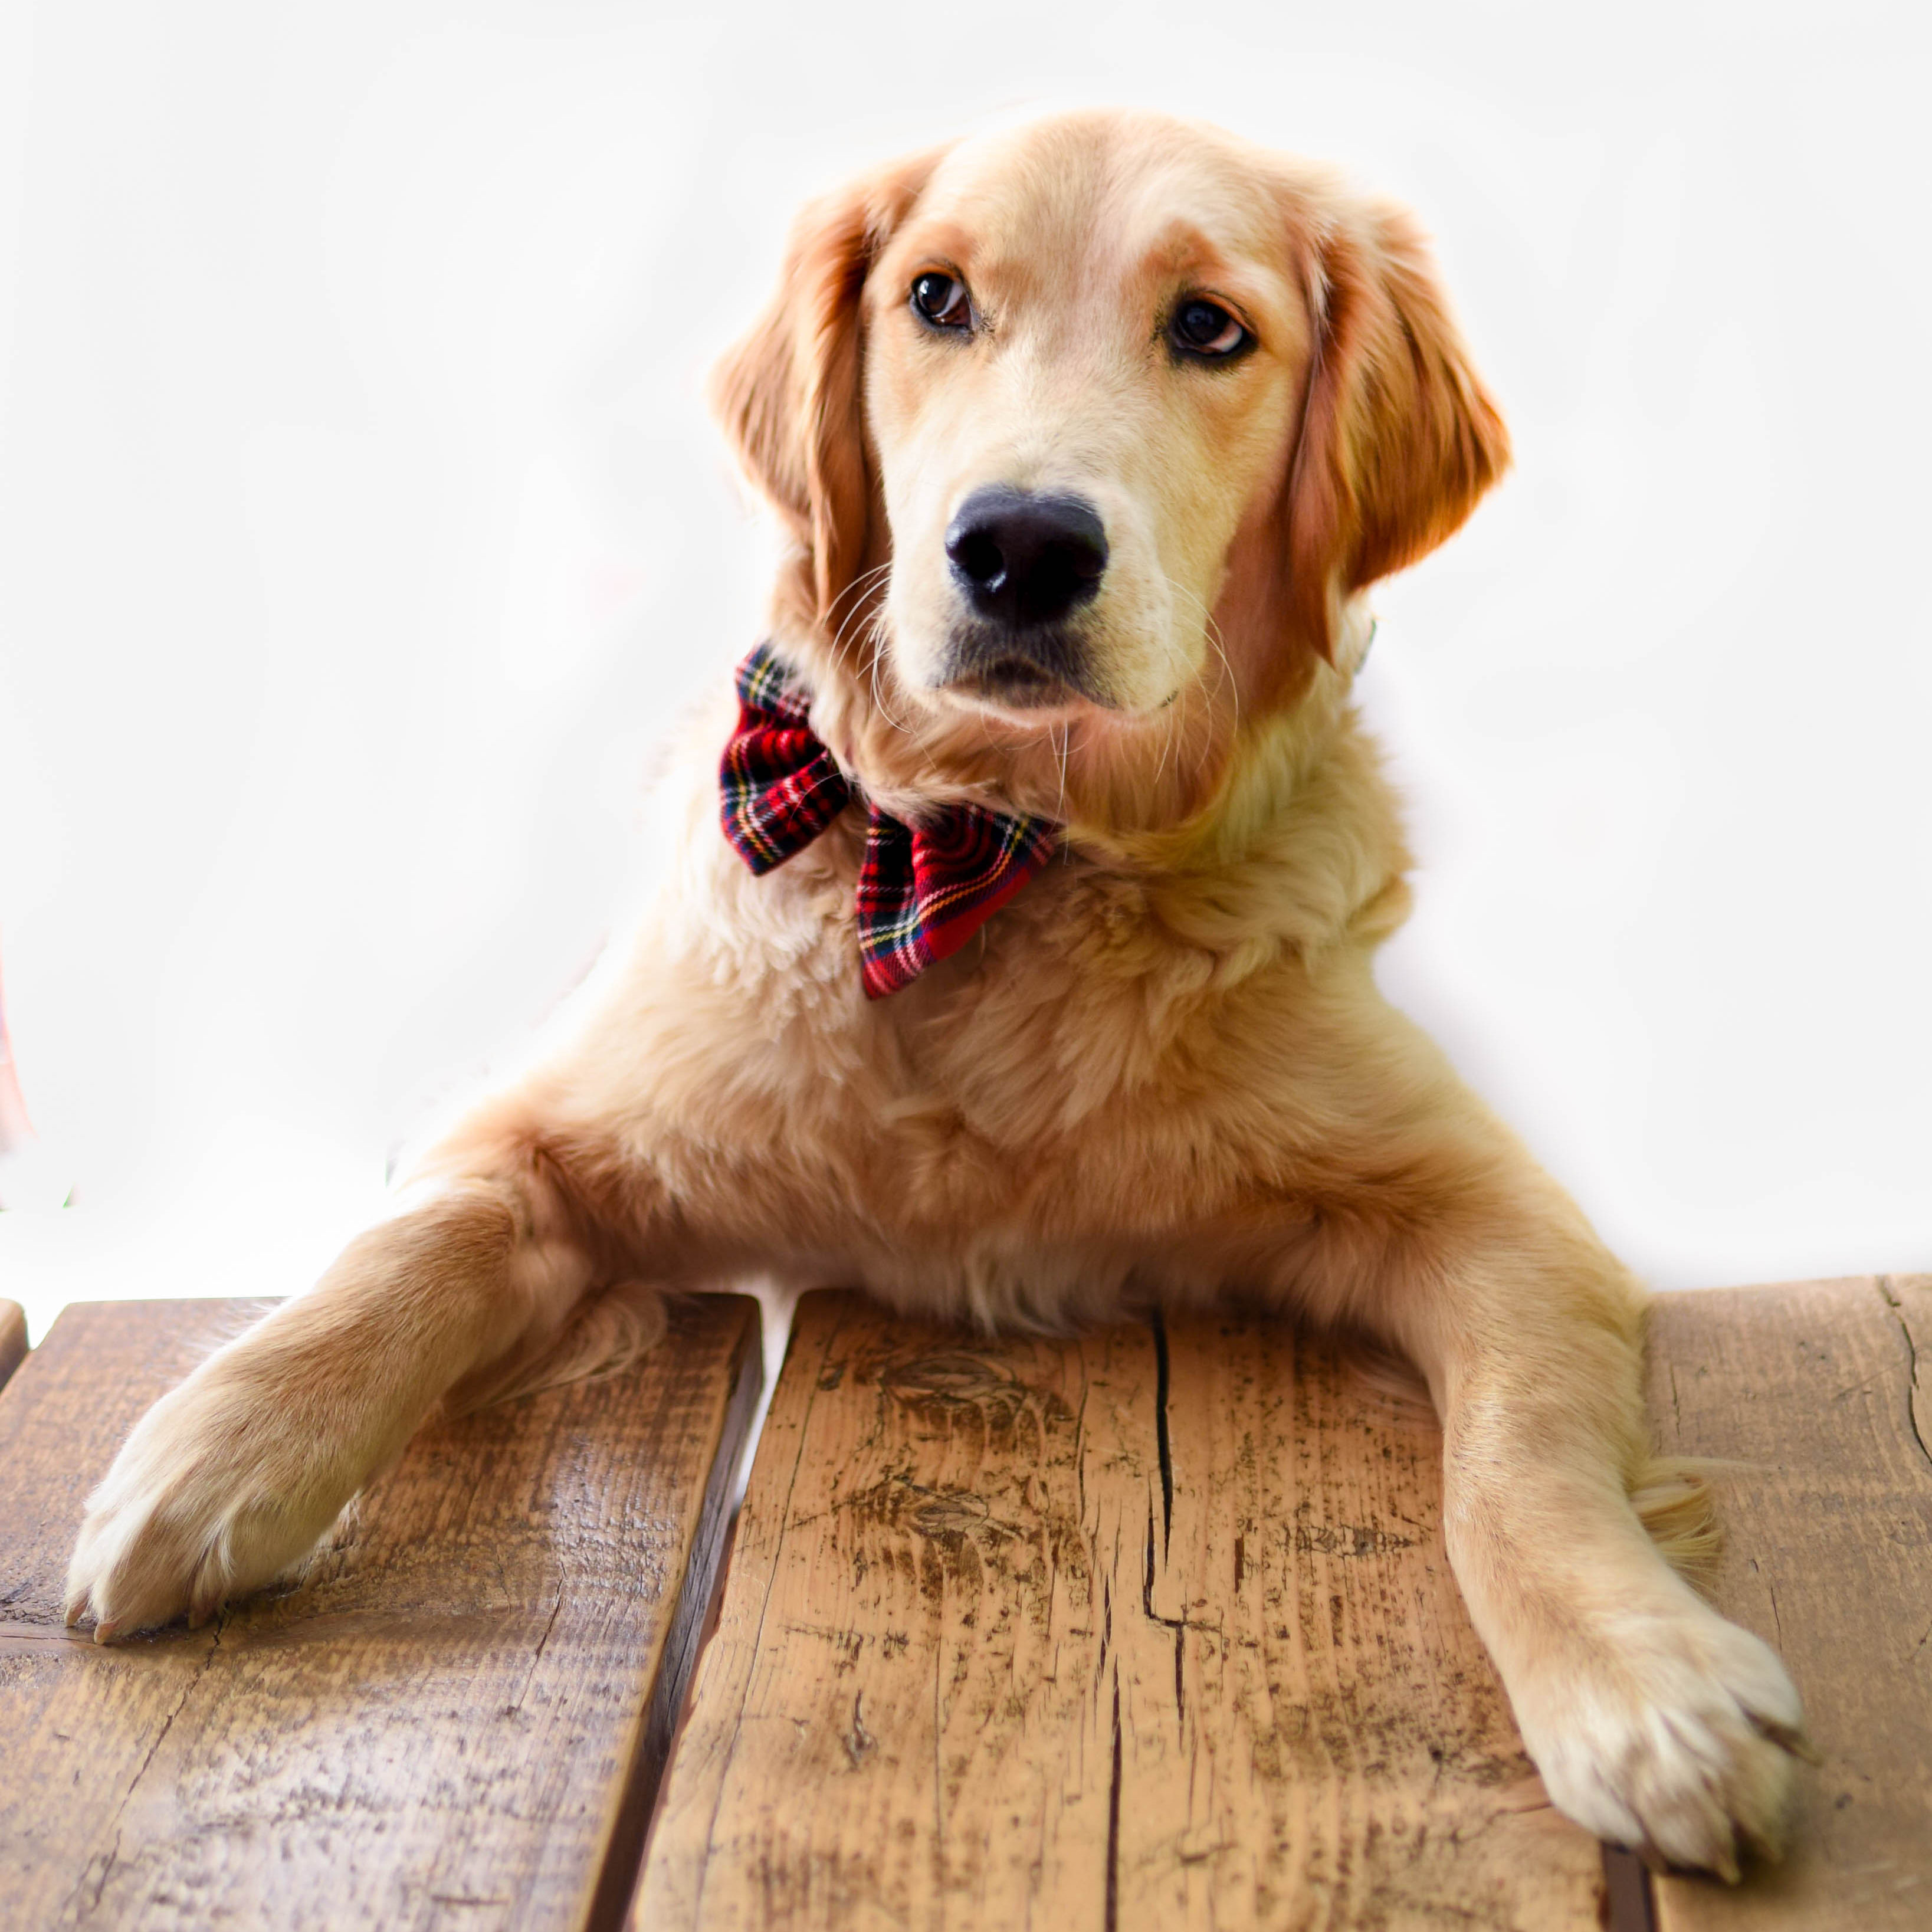 Isla, a golden retriever dog, wearing a red tartan bow-tie with her paws on a wooden desk